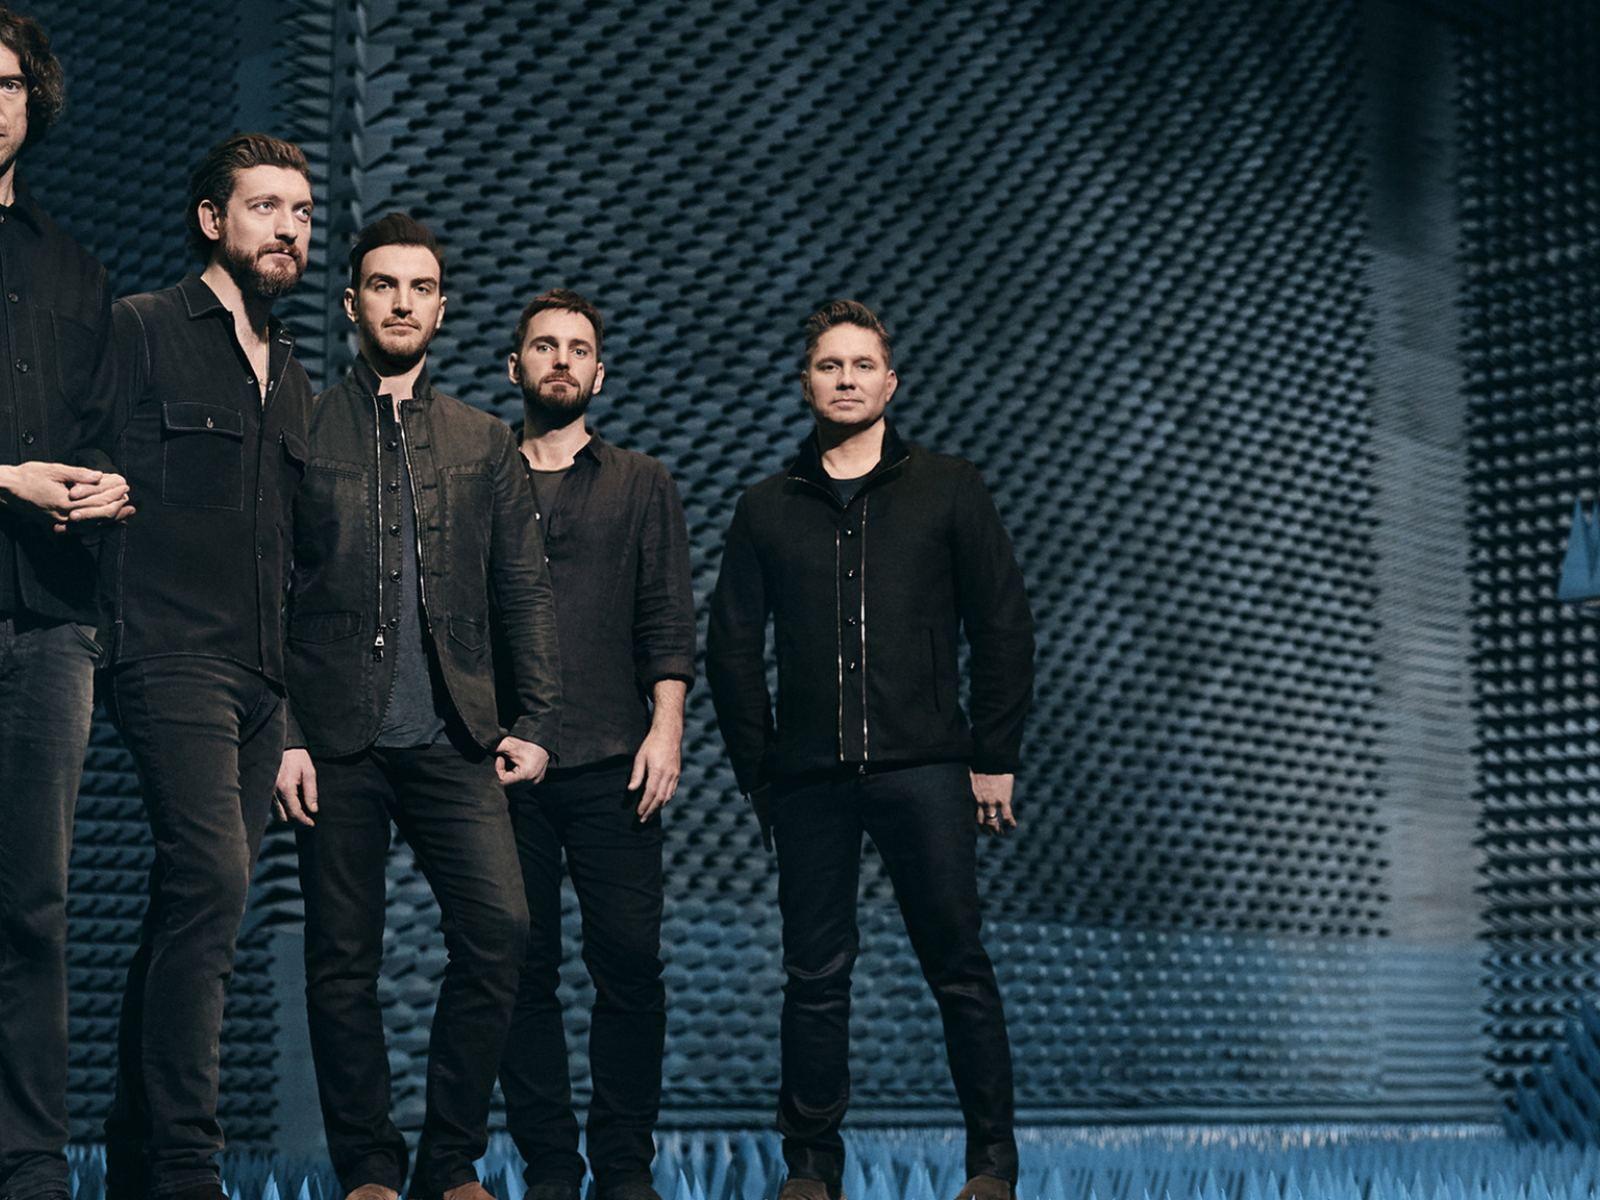 Main image for event titled 88.5 FM Presents – Snow Patrol